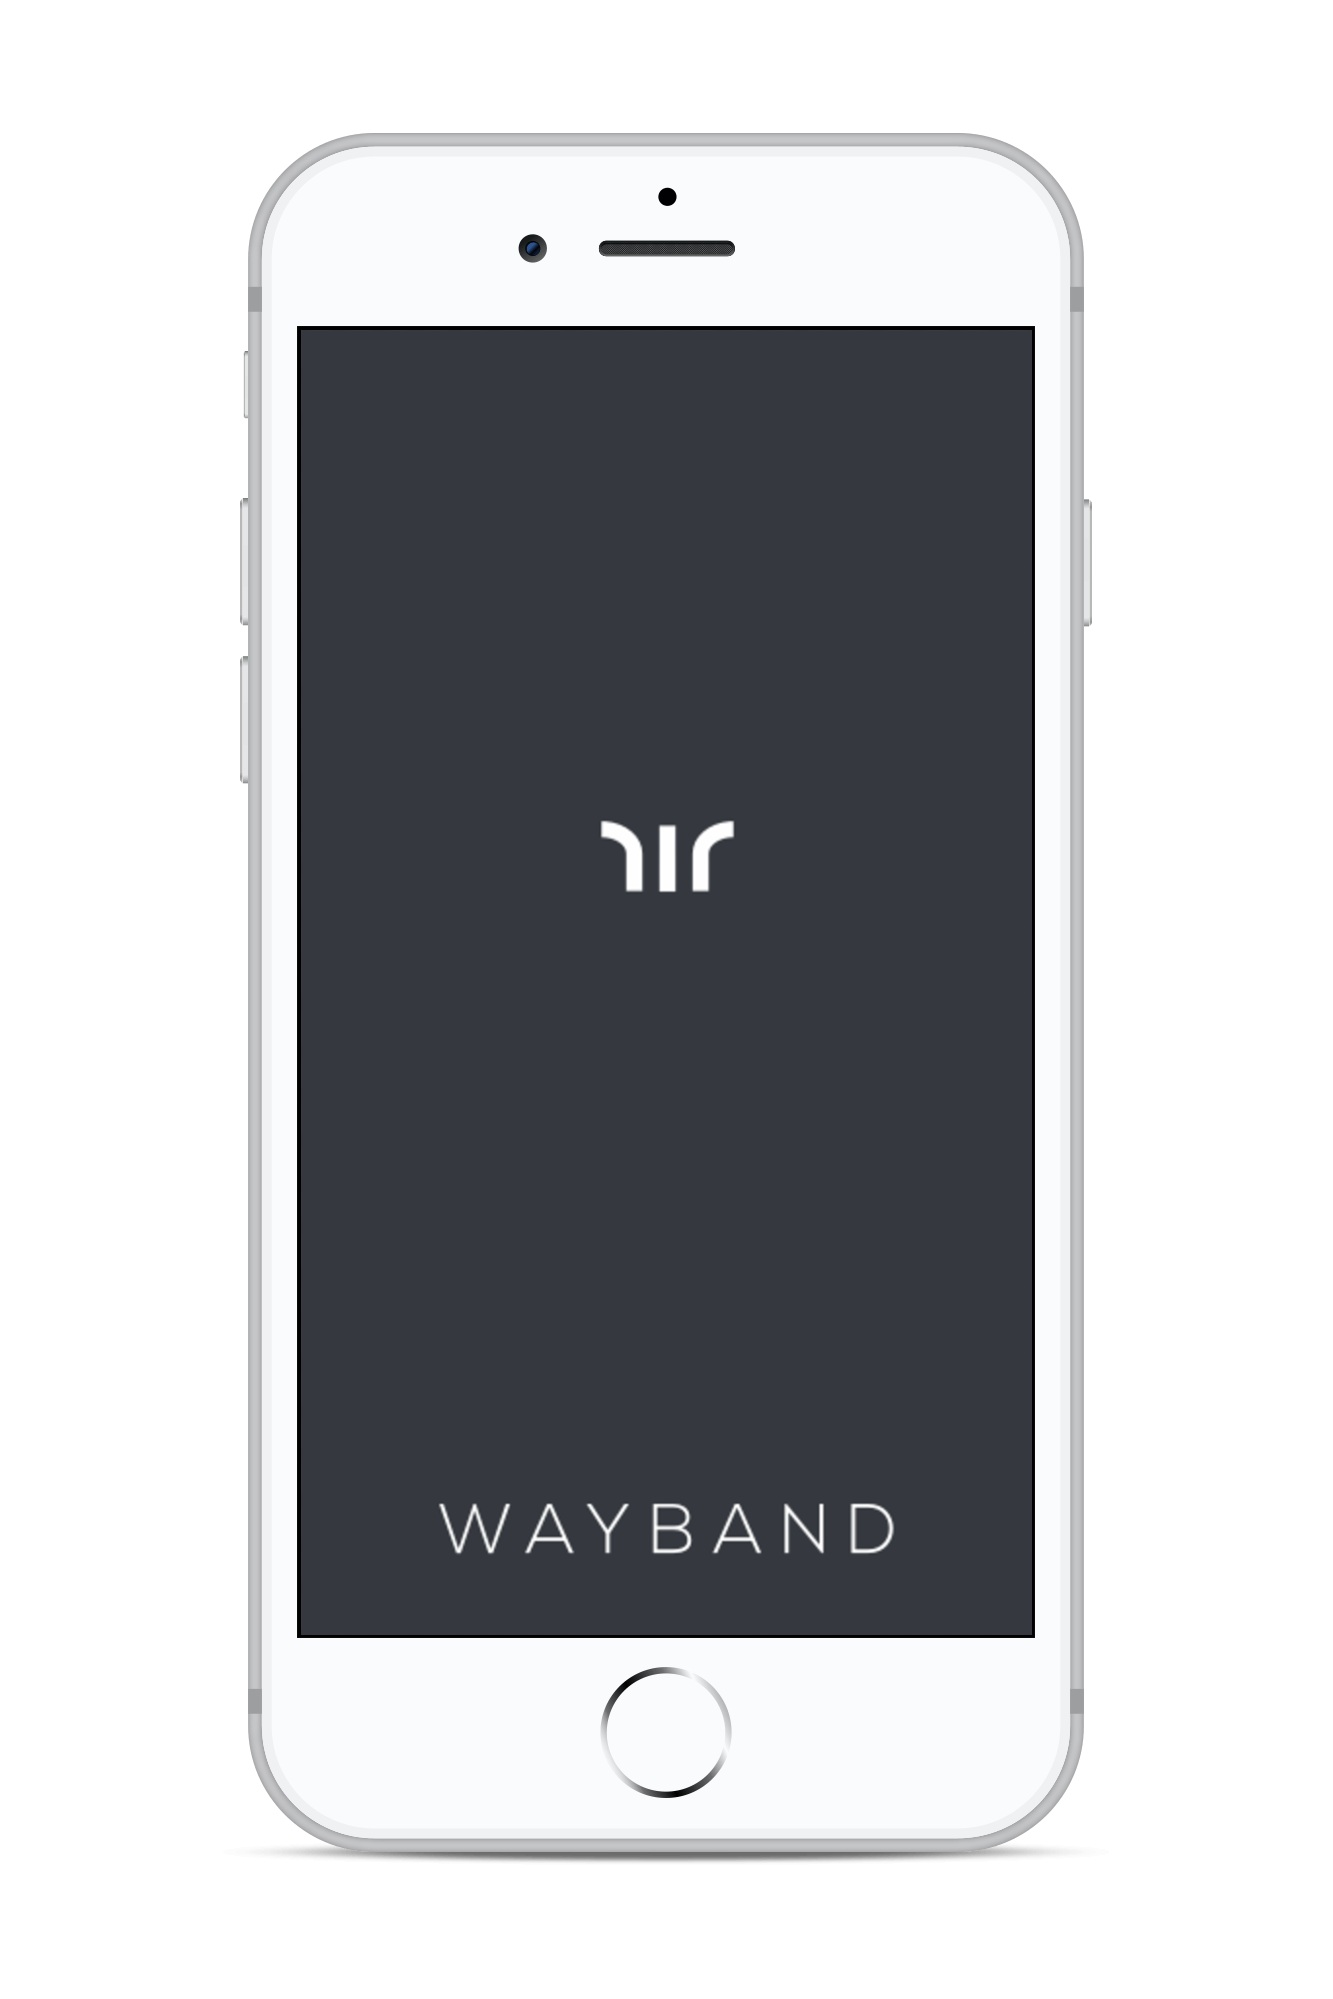 Put your phone away and walk with the Wayband